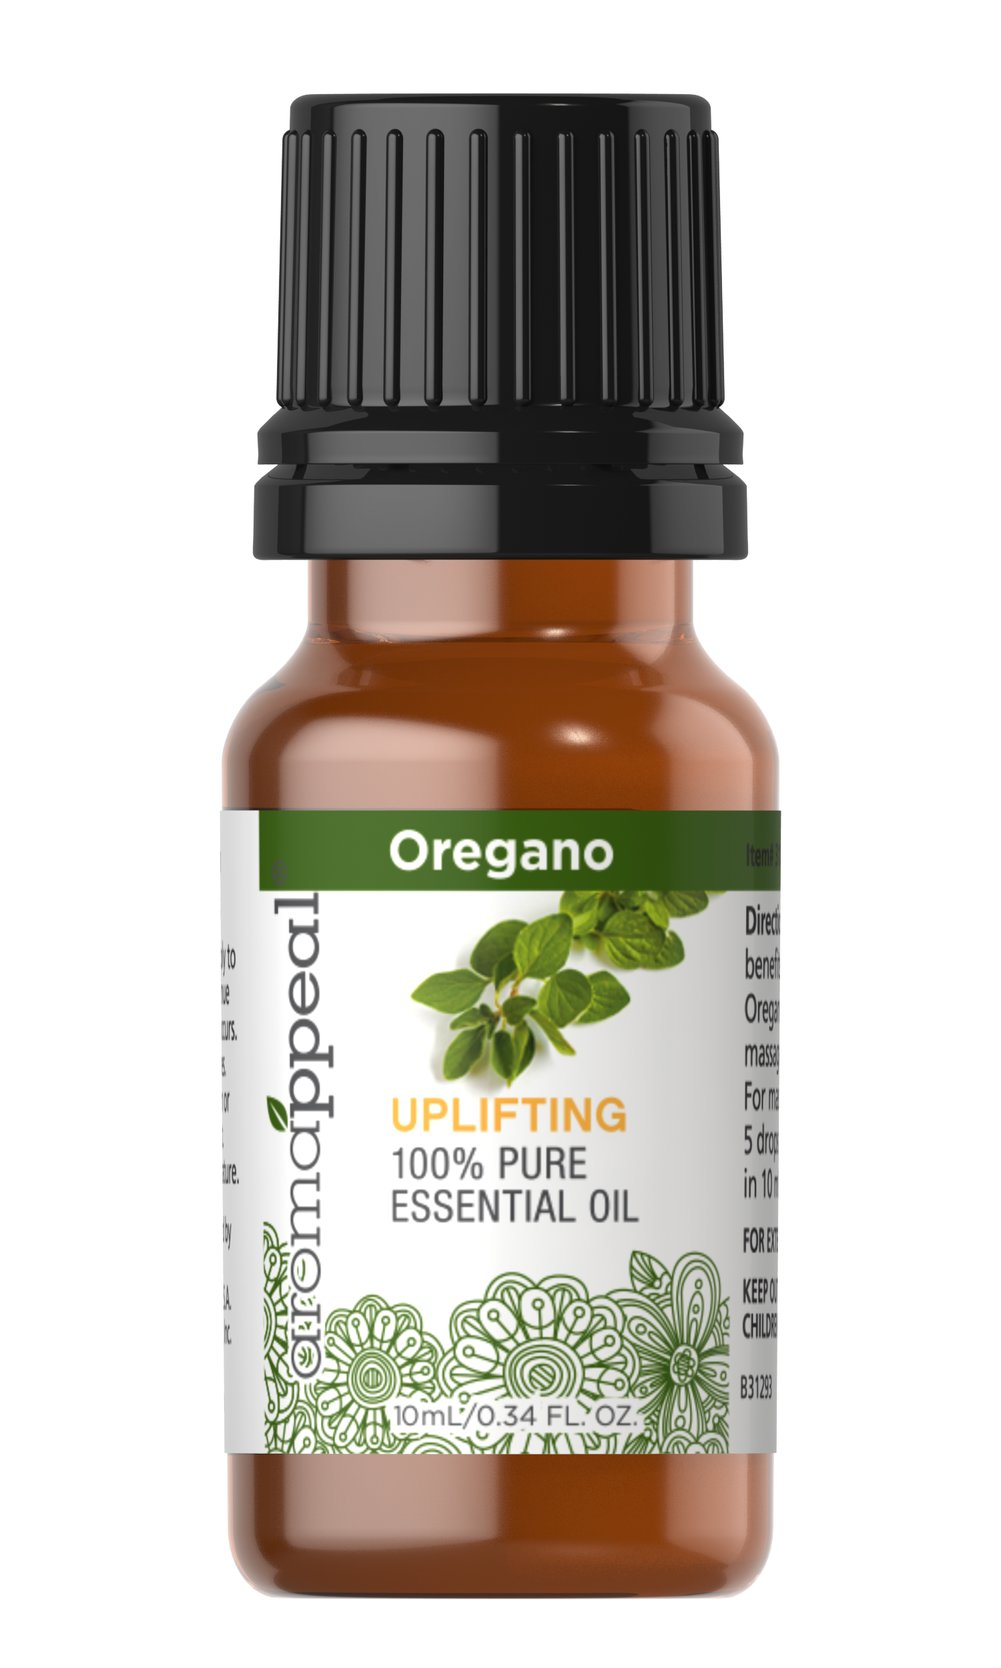 Oregano 100% Pure Essential Oil Delight your senses with the total body purification of Oregano Oil.  </p> Punctuated by its strong, spicy, herbal aroma, Oregano is a cleansing, invigorating oil that can leave you feeling totally revitalized.  10 ml Oil  $12.99